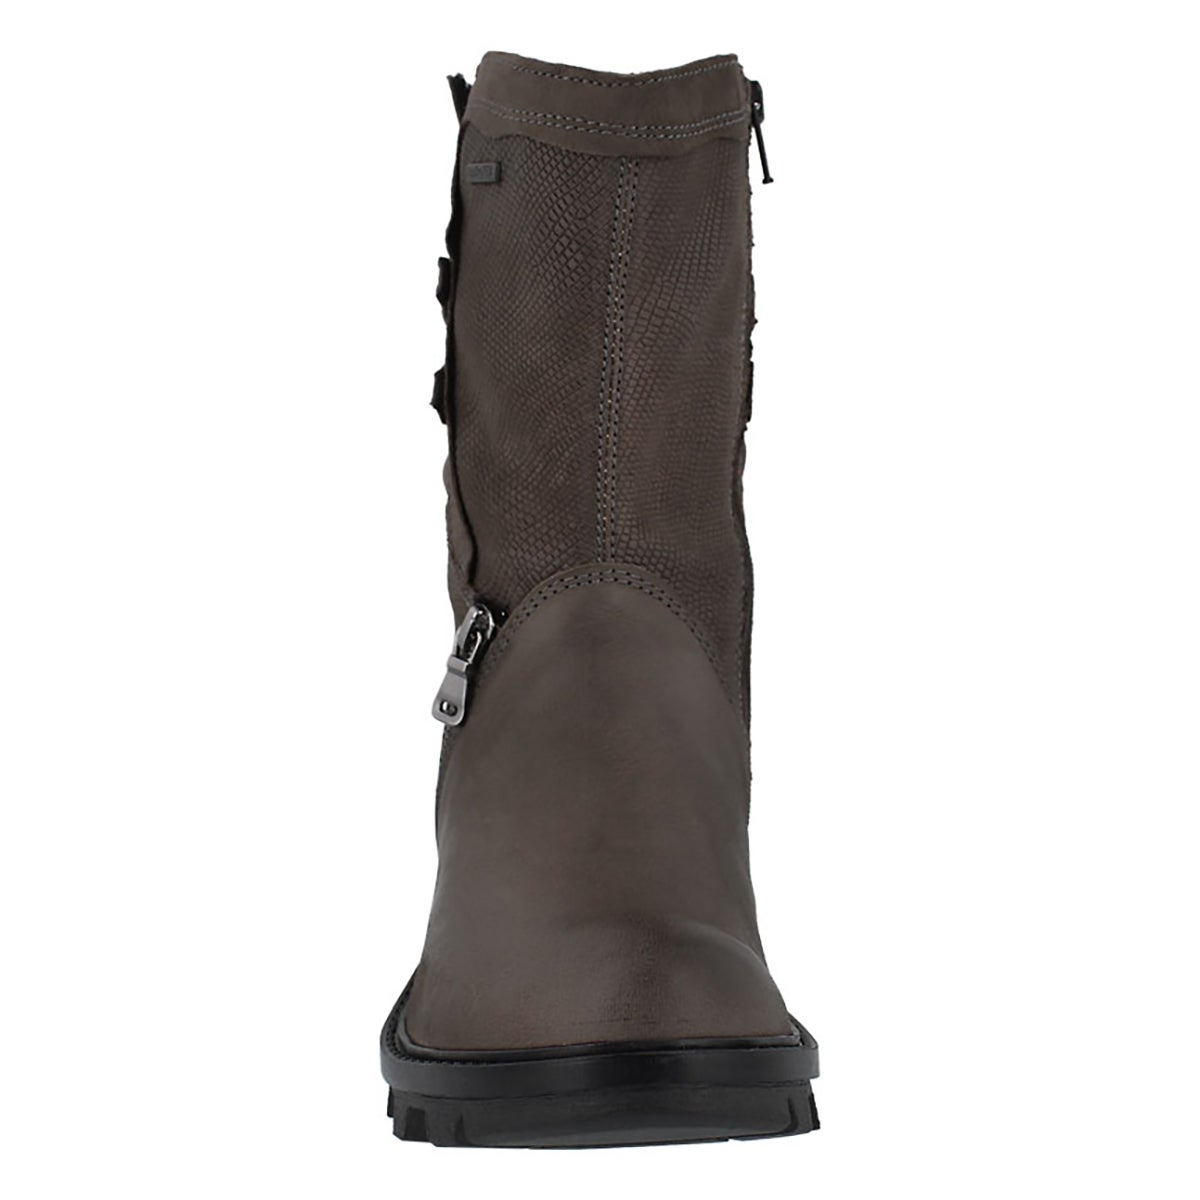 Lds Marilyn15 anthracite midcalf boot